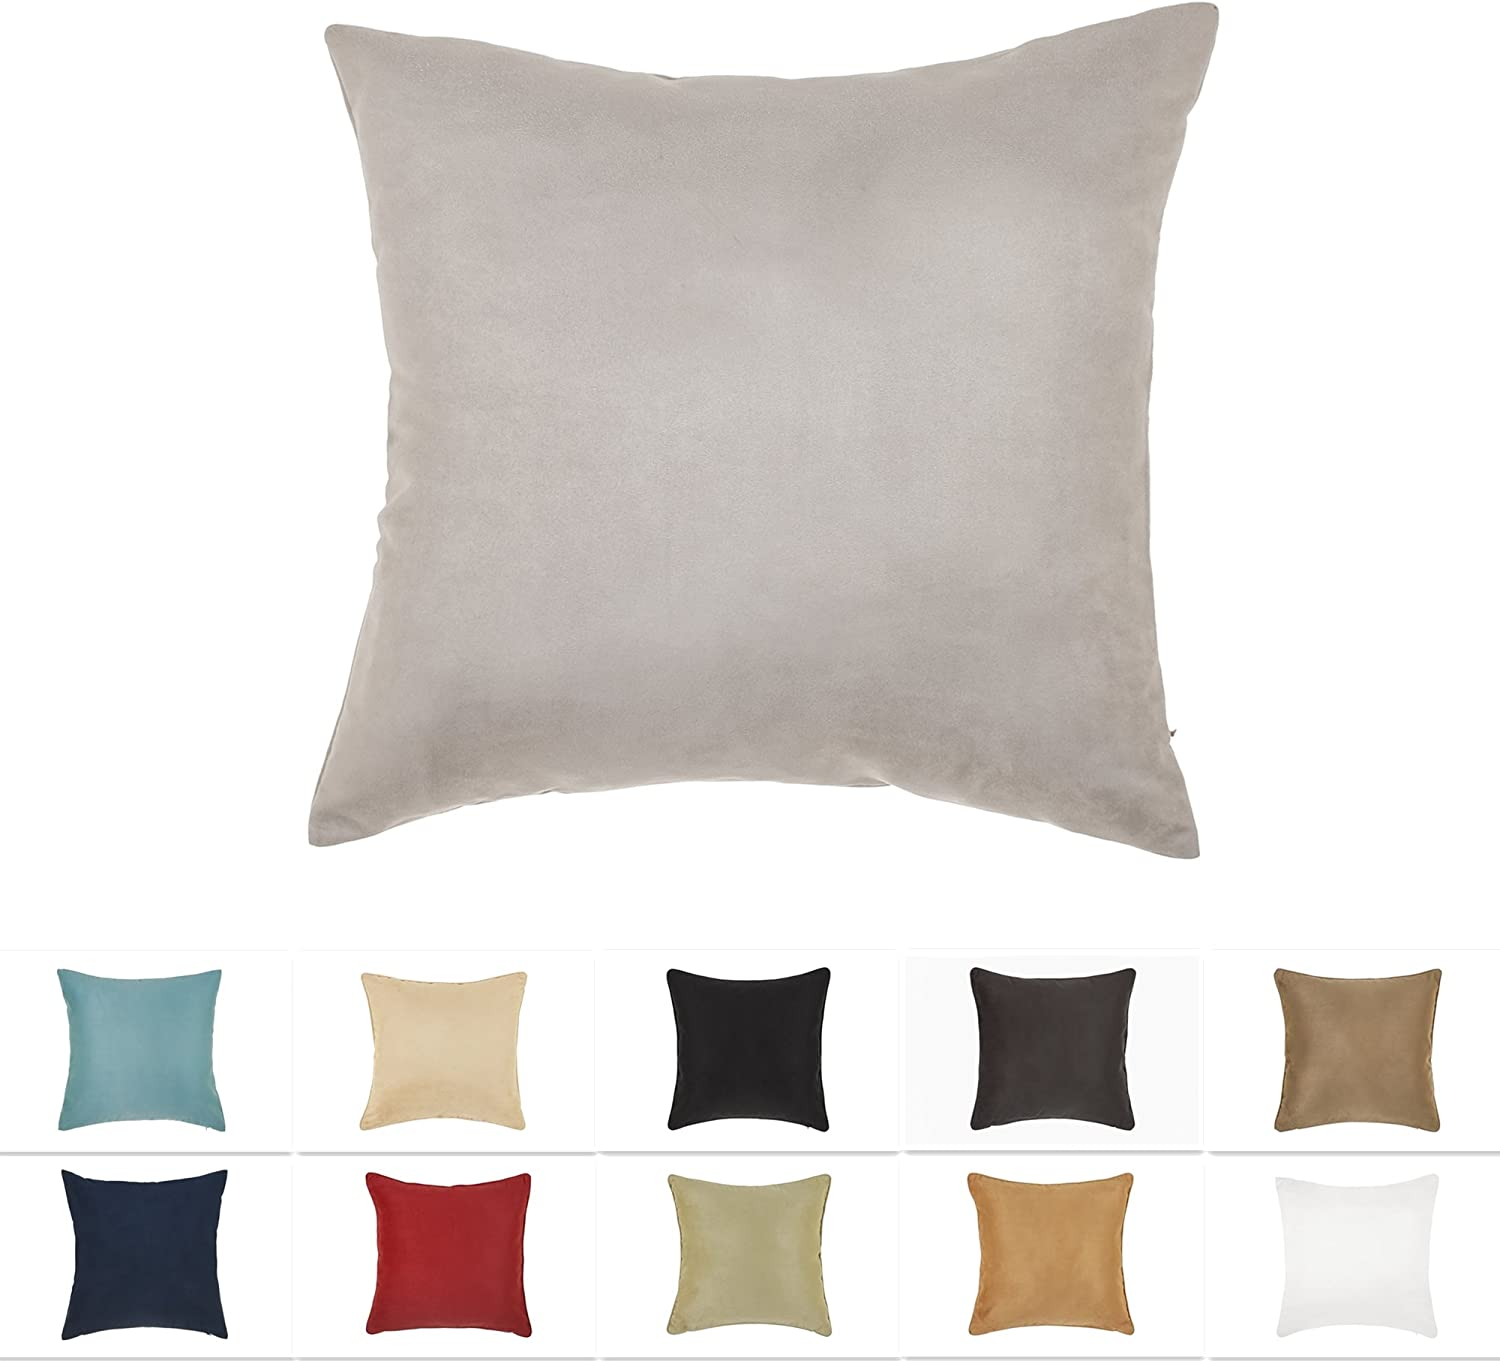 dreamhome 26 x 26 inches gray color faux suede decorative euro pillow cover throw pillow case with hidden zipper super soft faux suede on both sides